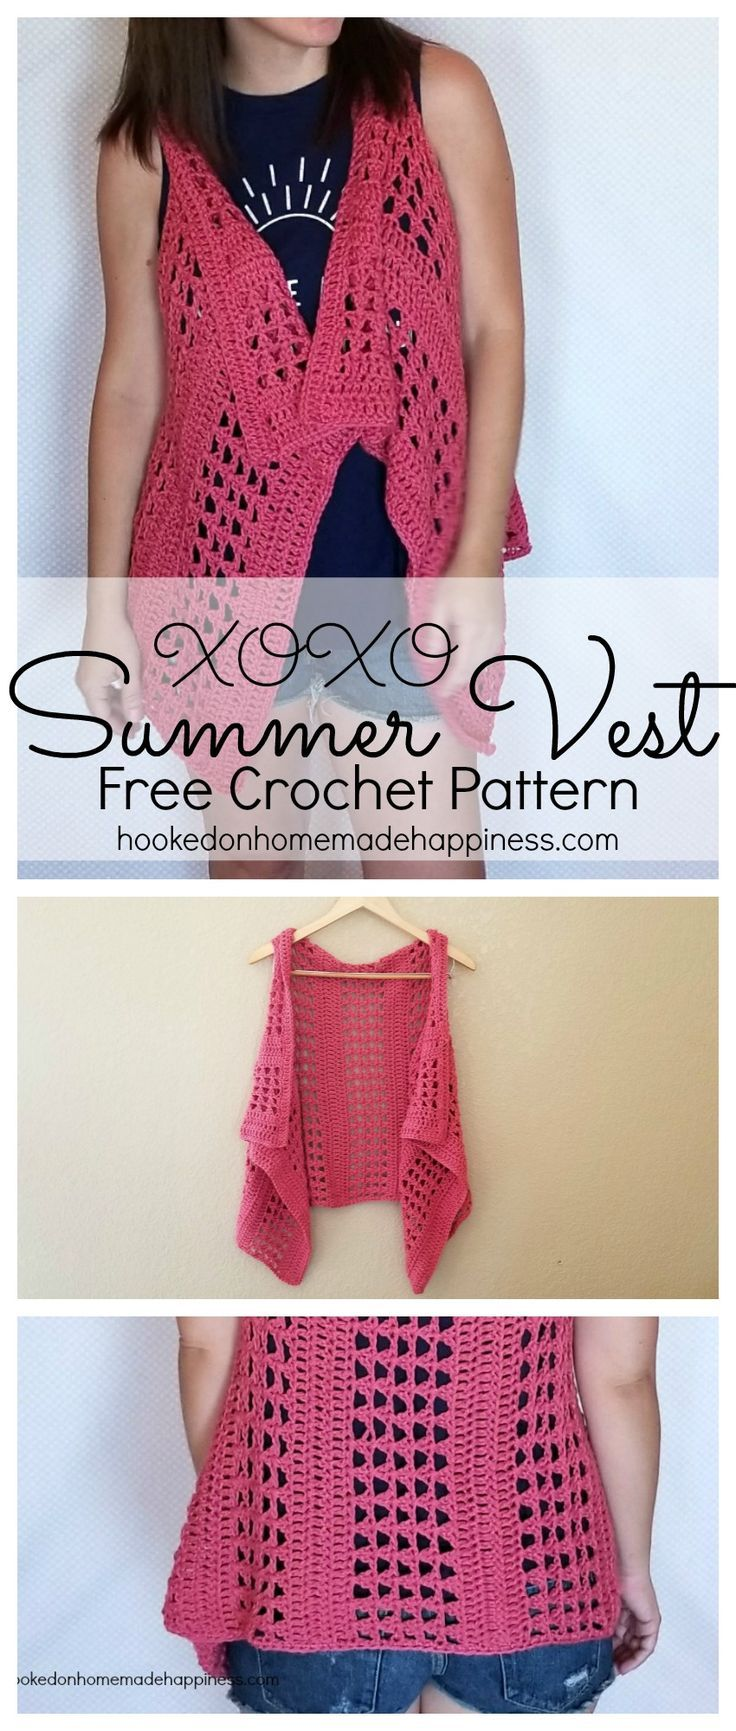 """Add this vest to your summer wardrobe for a fun accessory! The cotton yarn makes it light and a great project for warmer months. I used the """"X' stitch. It has an open, airy design, and creates a nice textured piece. The vest is just one big rectangle with armholes. It's fitted along the back, but is pretty and flowy in the front. I wanted to keep everything easy-peasy and because there isn't any decreasing along the neckline, it hangs a little bit. But by folding over the neckline like a…"""